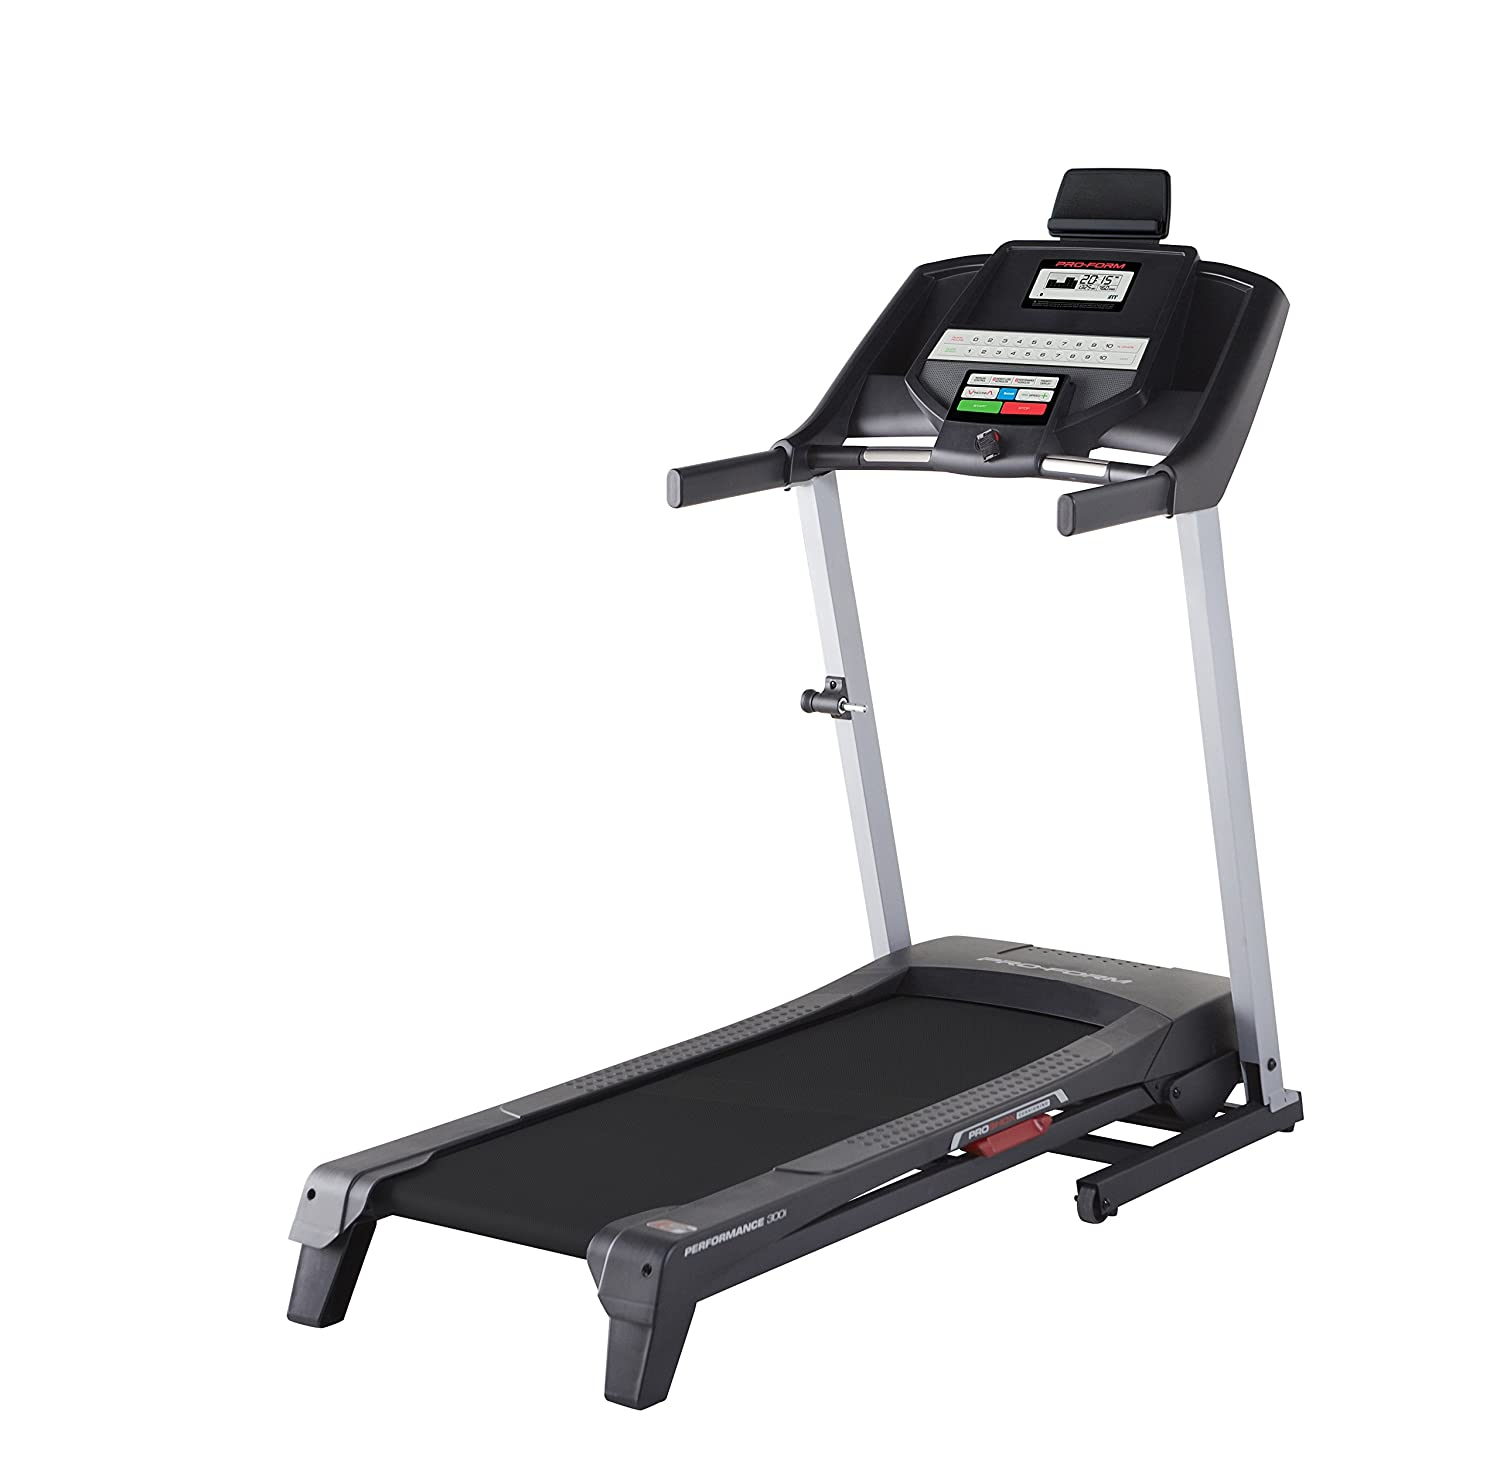 The Best Treadmill Under $500 1